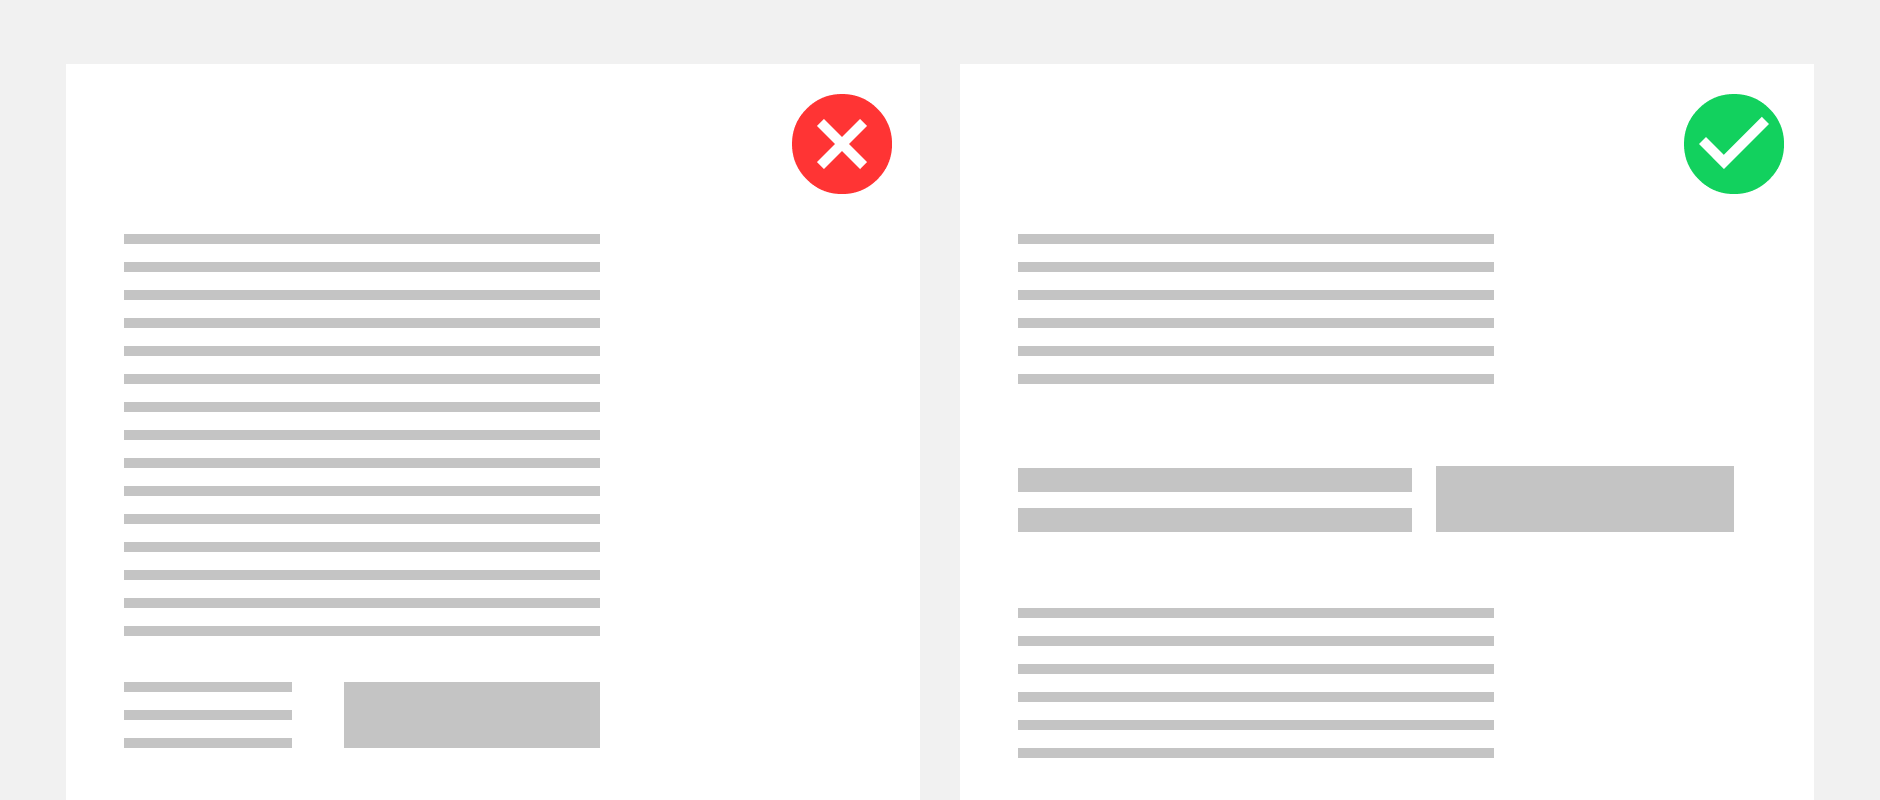 One webpage with only text and one with a clear CTA illustrating the importance of content design for content engagement.